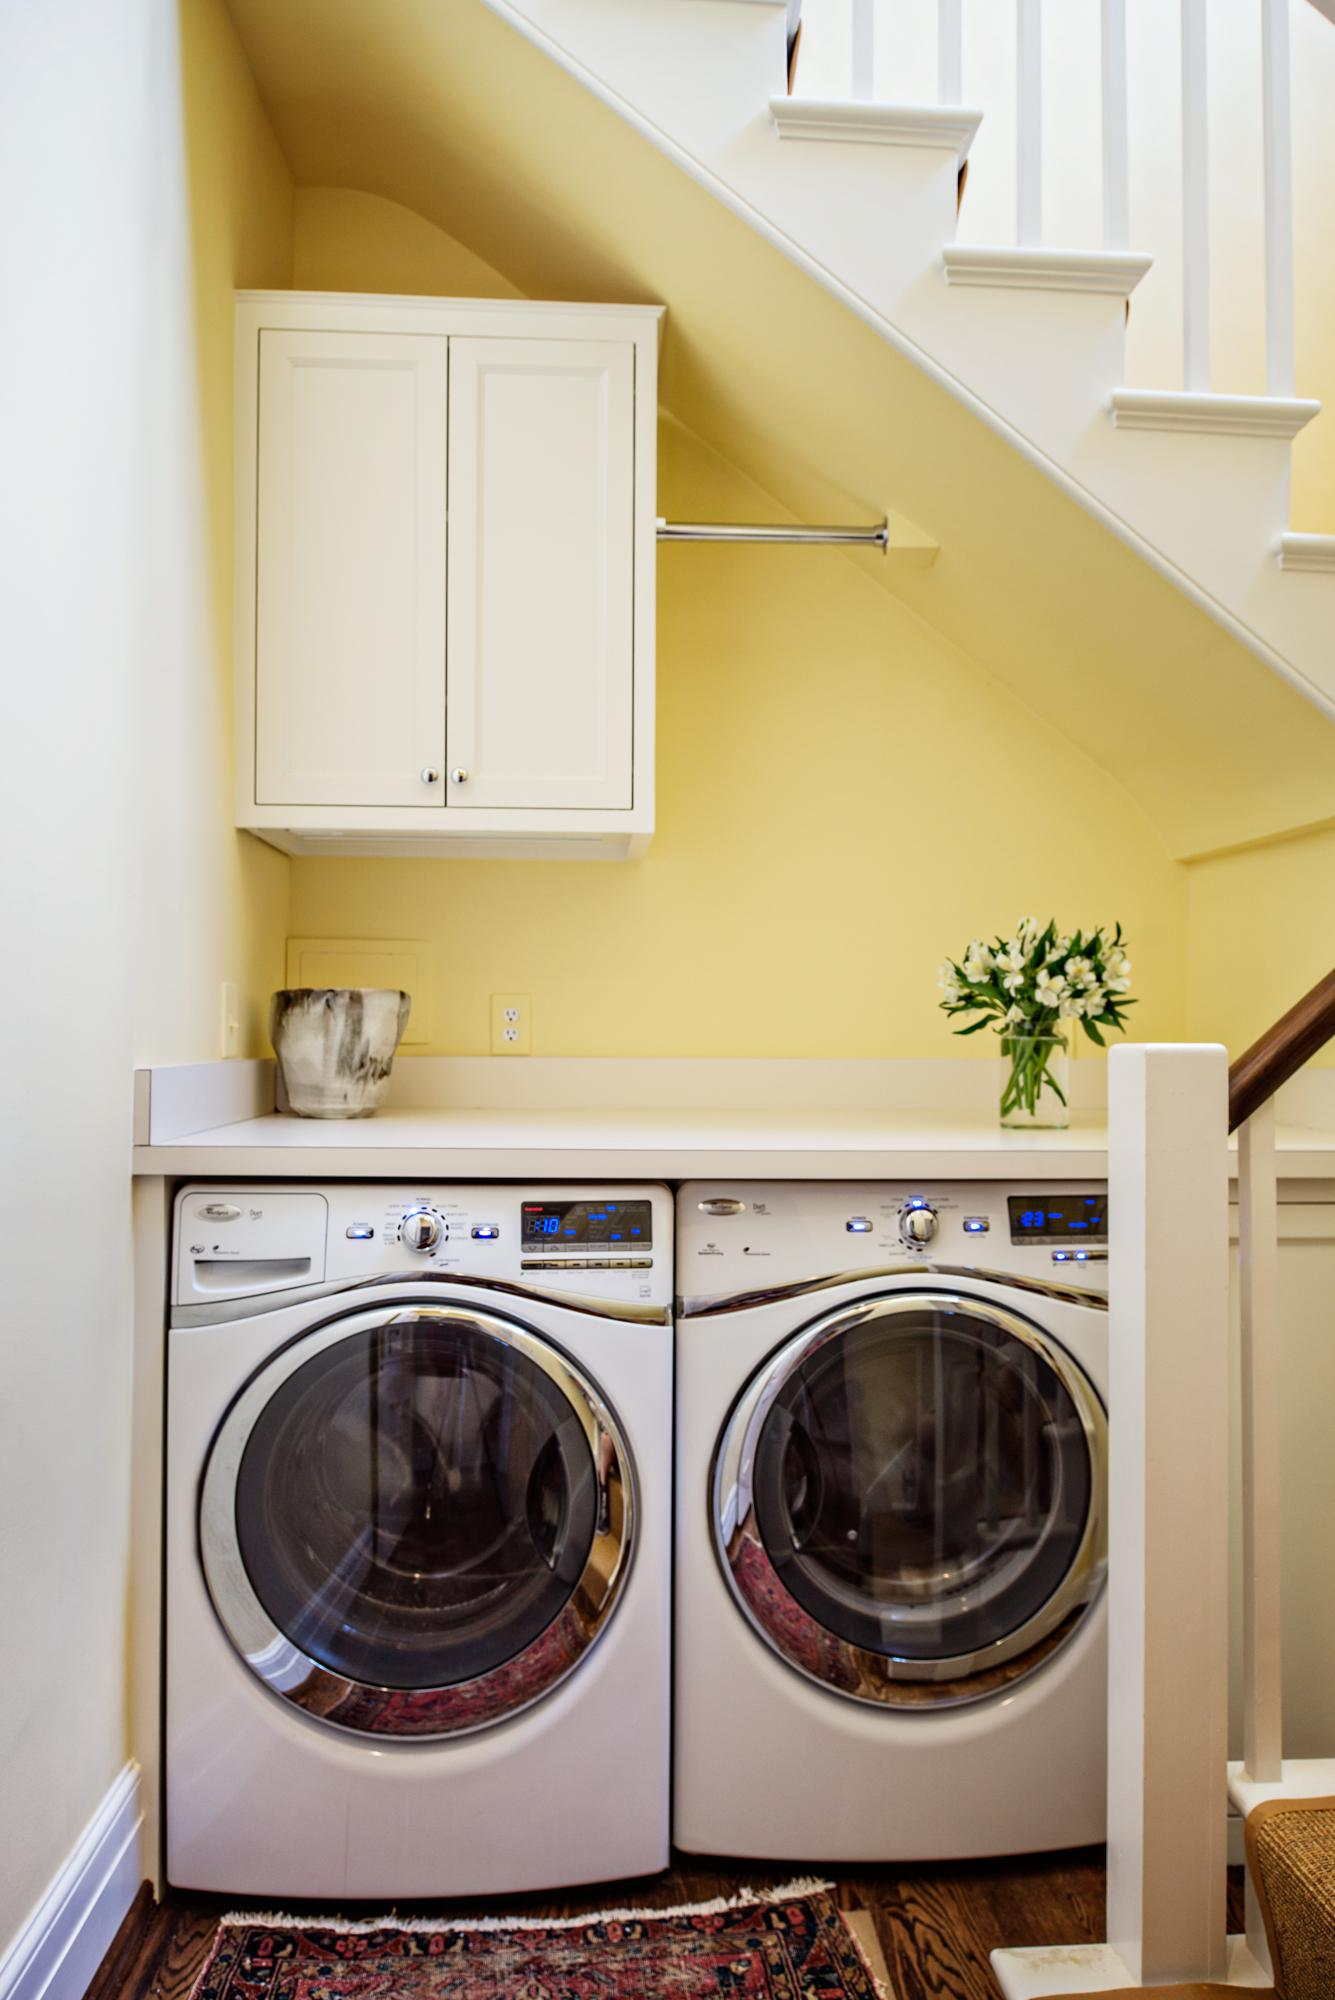 Small Spaces An Ikea Laundry Room Under The Stairs